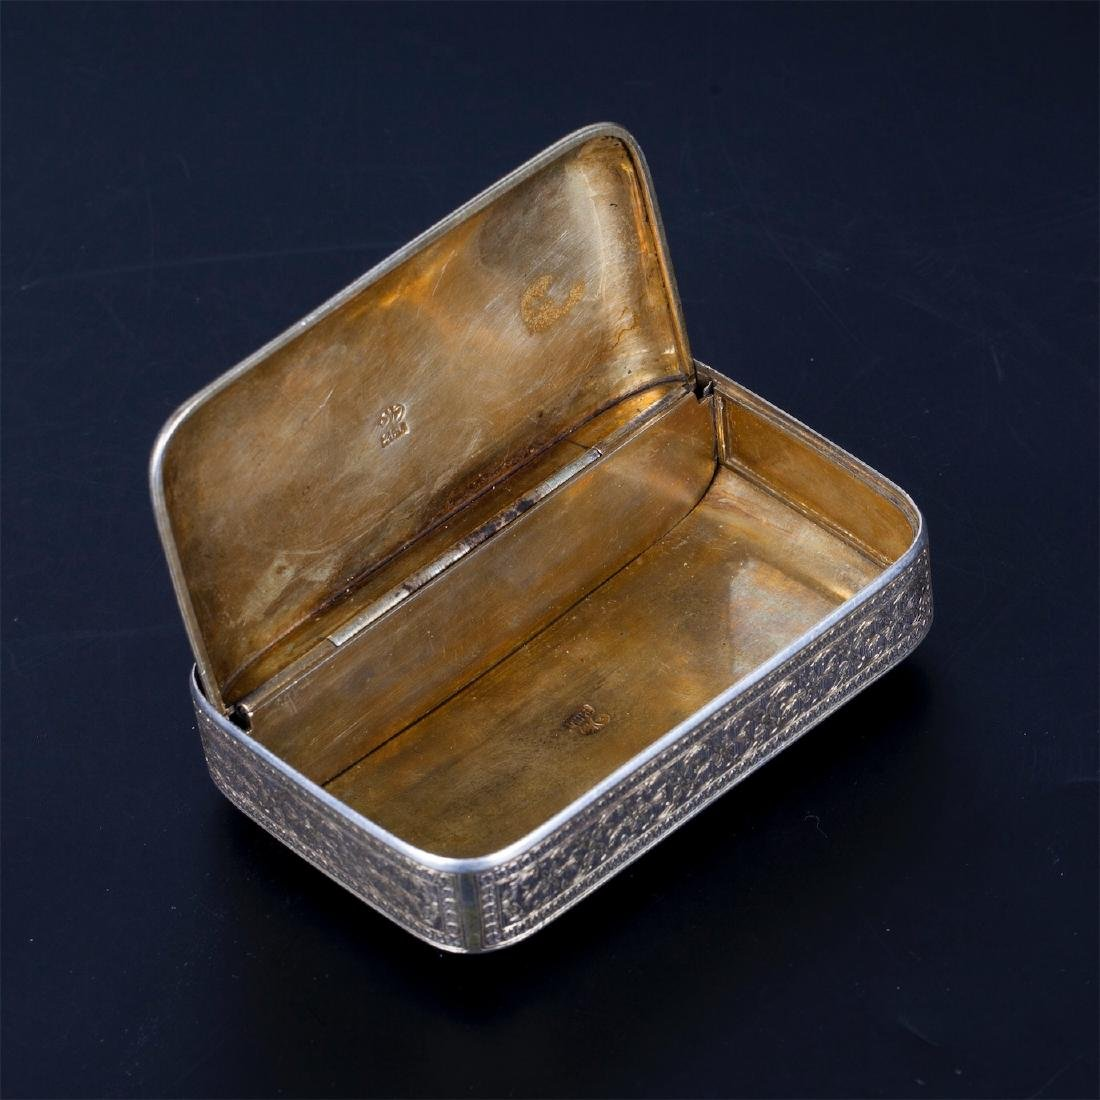 Antique Turkish silver cigarette case with a floral - 5